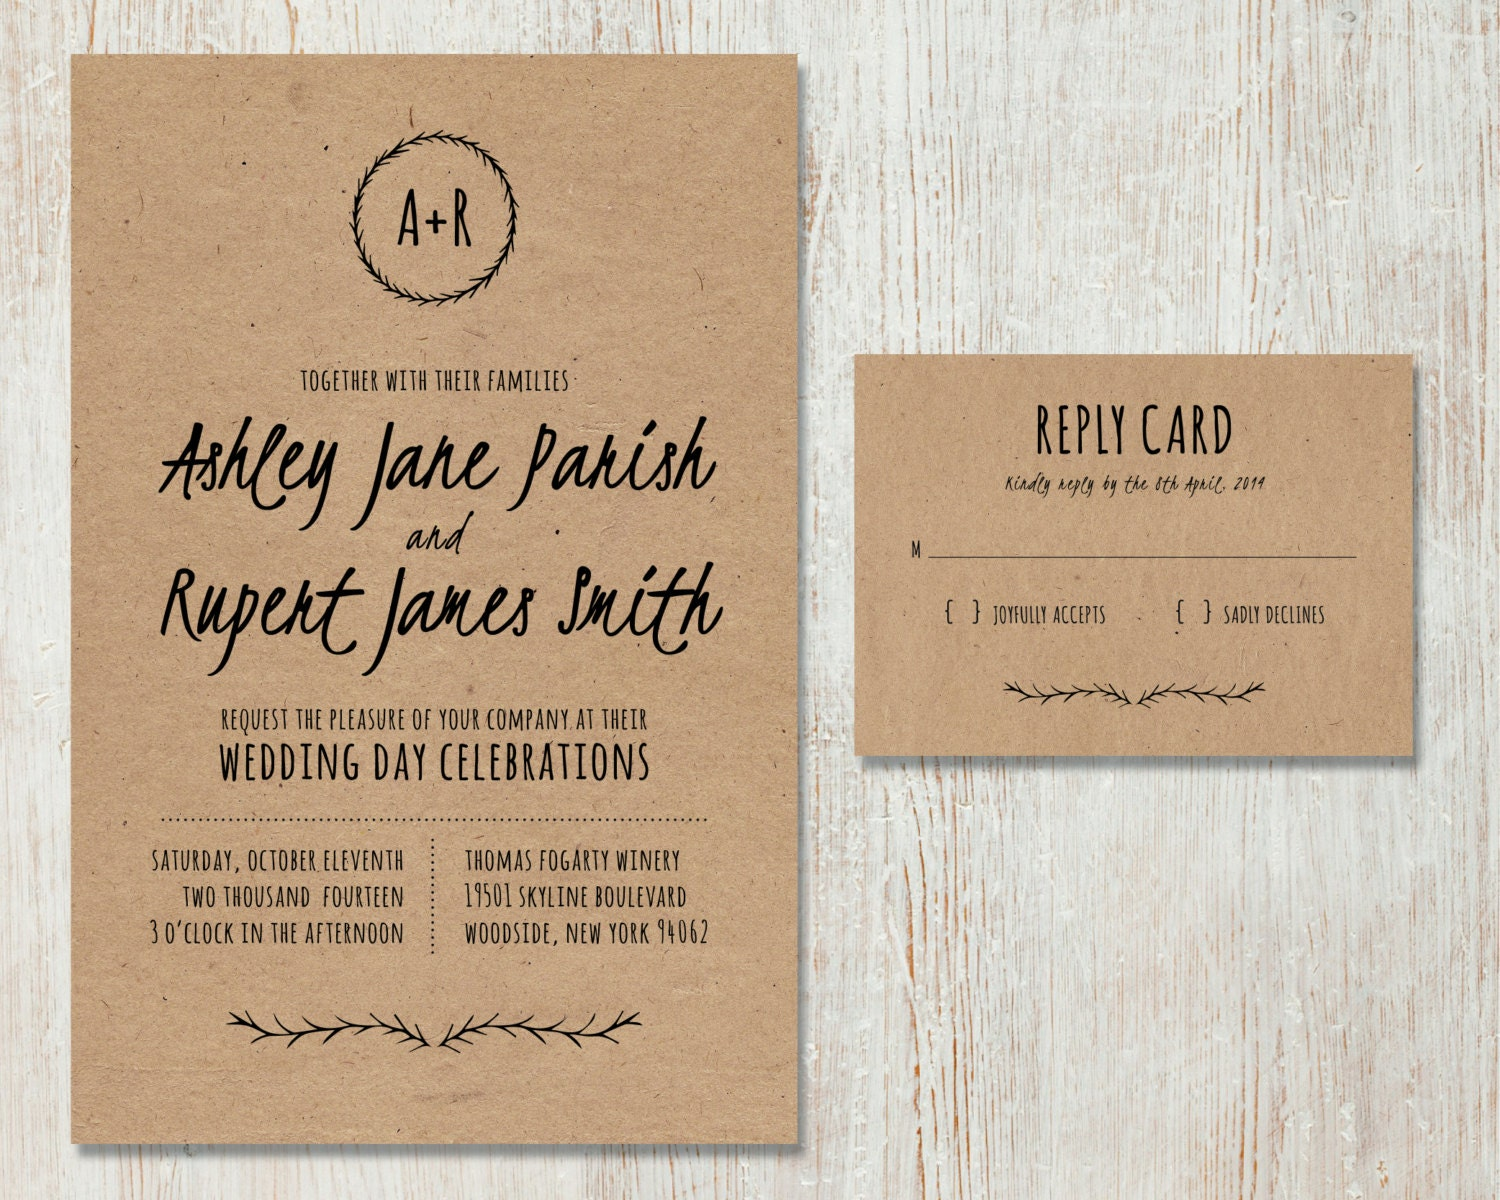 rustic wedding invitation diy kraft paper invitation country, Wedding invitations